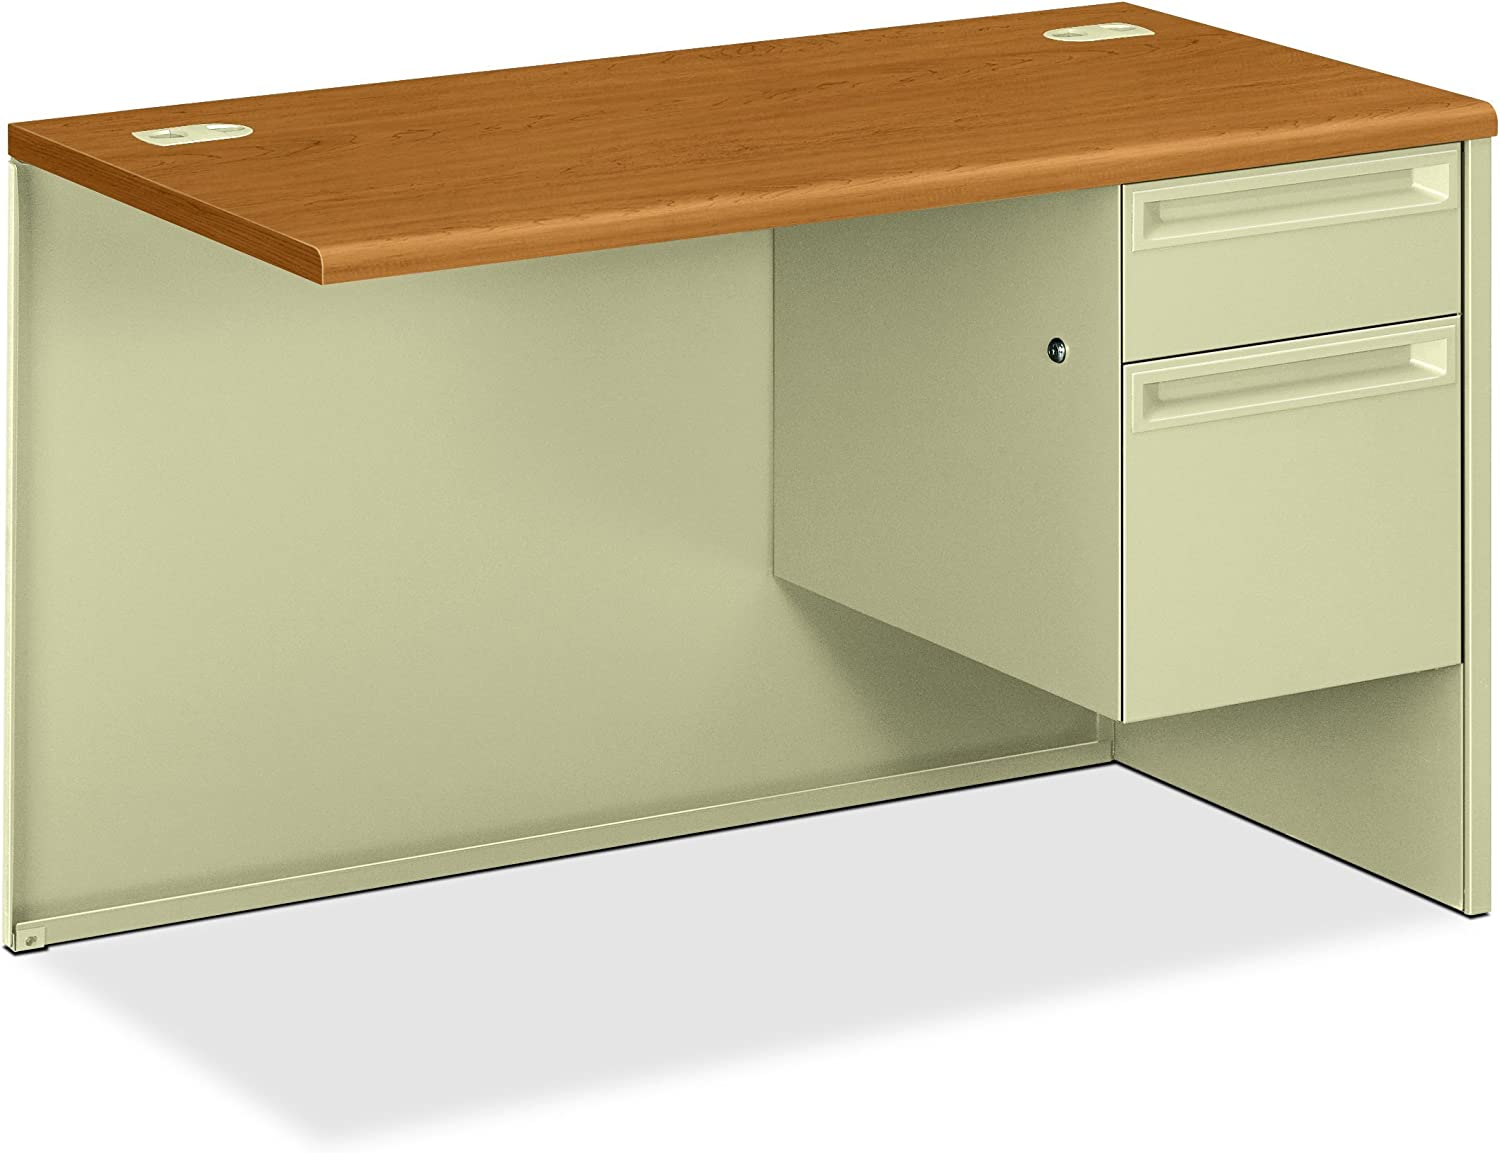 Hon Right Pedestal Return Desk With Lock 48 By 24 By 29 1 2 Inch Harvest Putty Furniture Decor